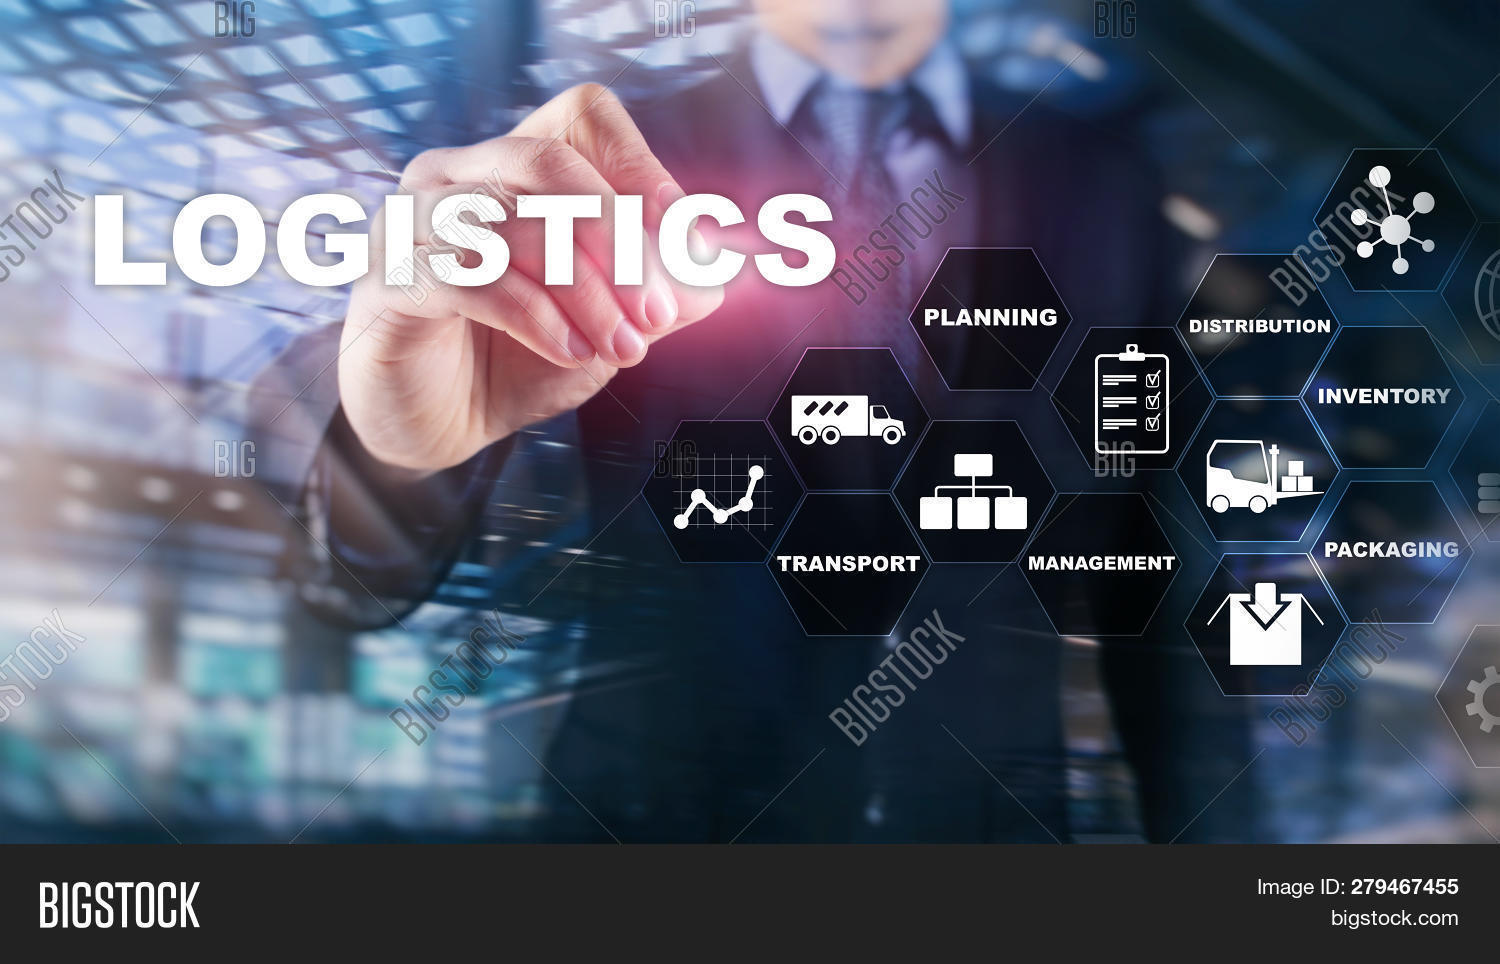 Logistic Transport Image & Photo (Free Trial) | Bigstock